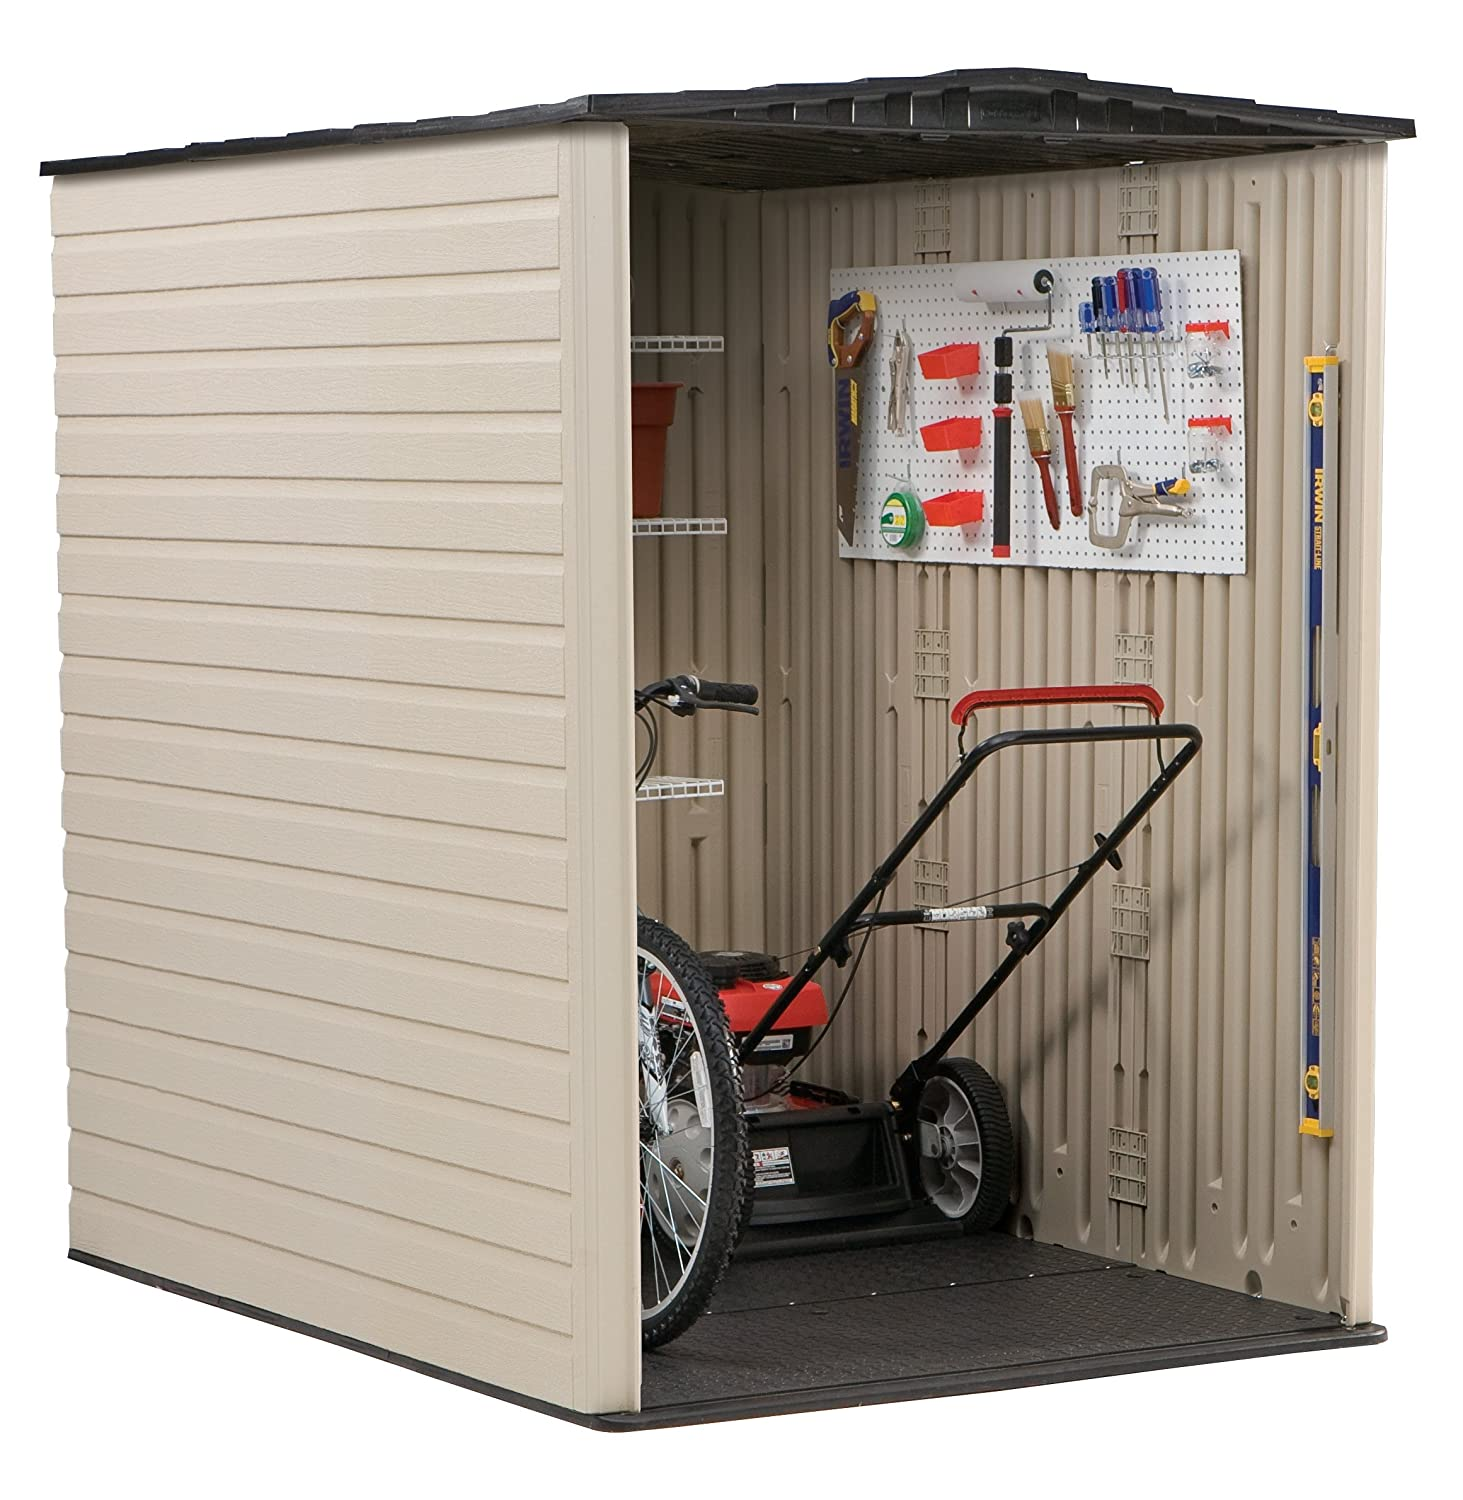 Great Amazon.com : Rubbermaid Plastic Large Outdoor Storage Shed, 159 Cu. Ft.,  Sandalwood With Onyx Roof (FG5L3000SDONX) : Garden U0026 Outdoor